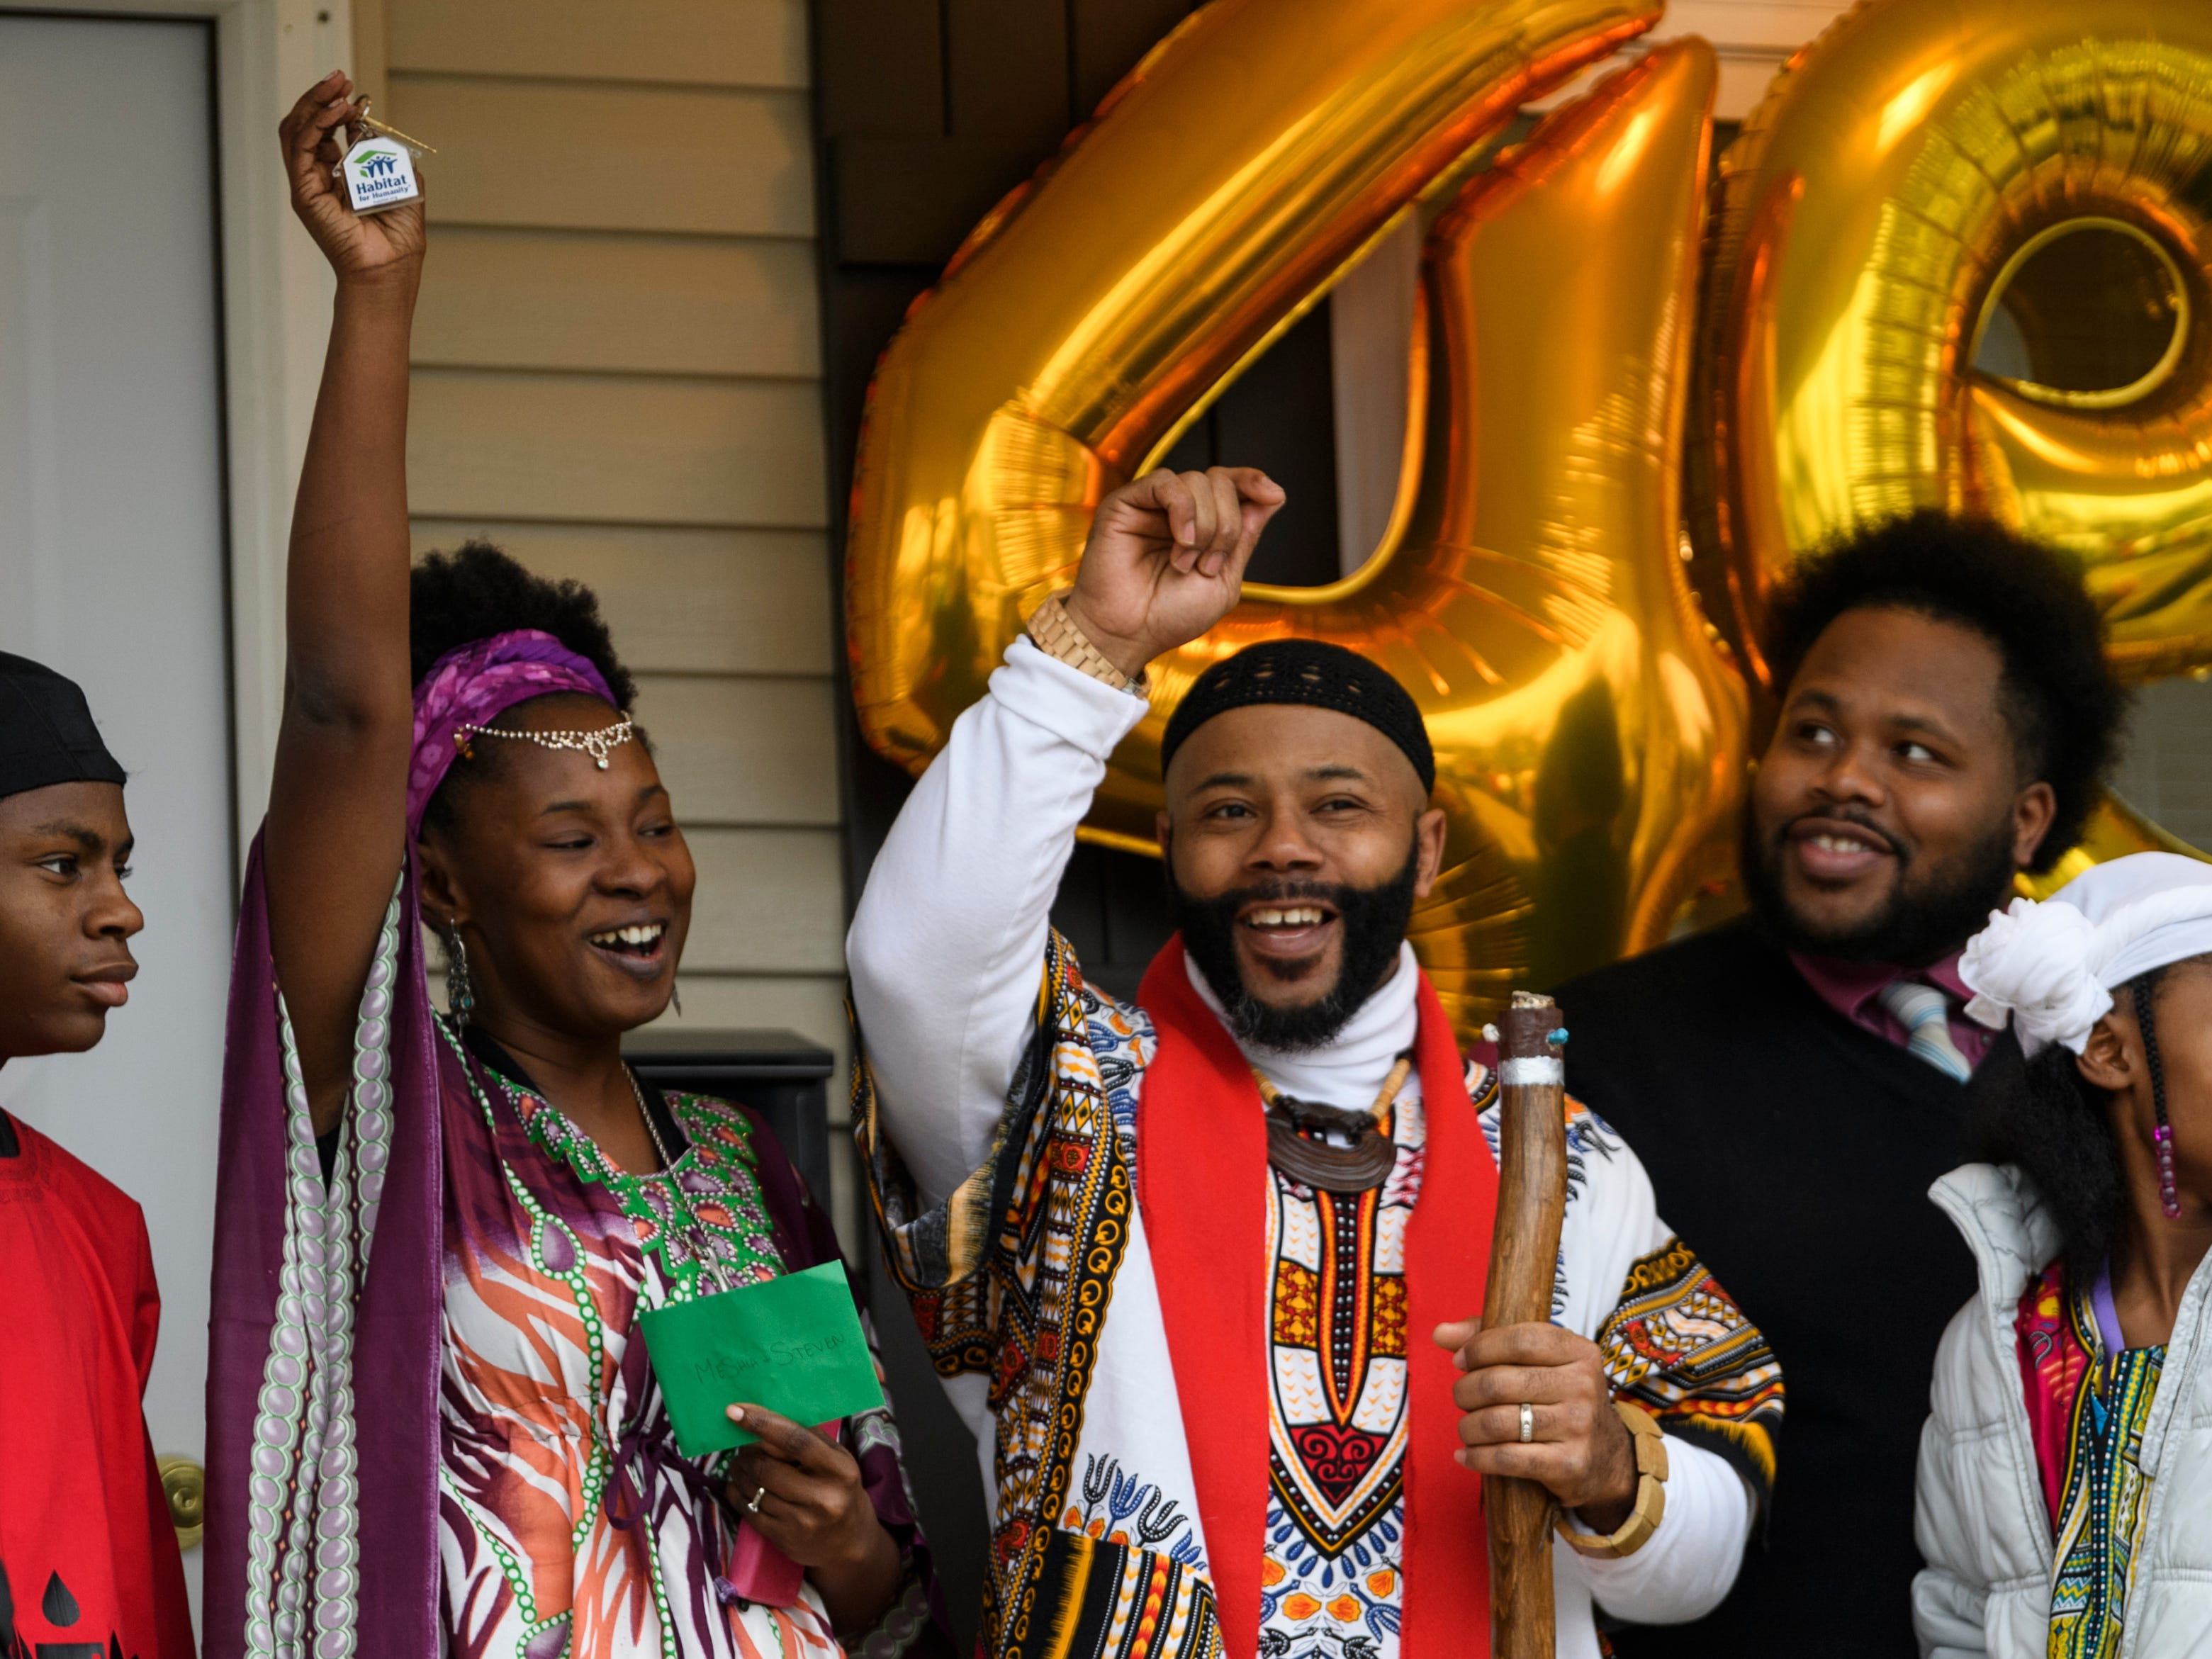 MeShia, center left, and Steven Kince, center right, react to being handed the keys to their new home as they stand on the porch with their family during the 500th Habitat for Humanity home dedication ceremony on Bedford Avenue in Evansville, Ind., Thursday afternoon, Dec. 20, 2018. Four new homeowners were recognized during the event with ceremonial ribbon cuttings and gift-giving in front of each home.